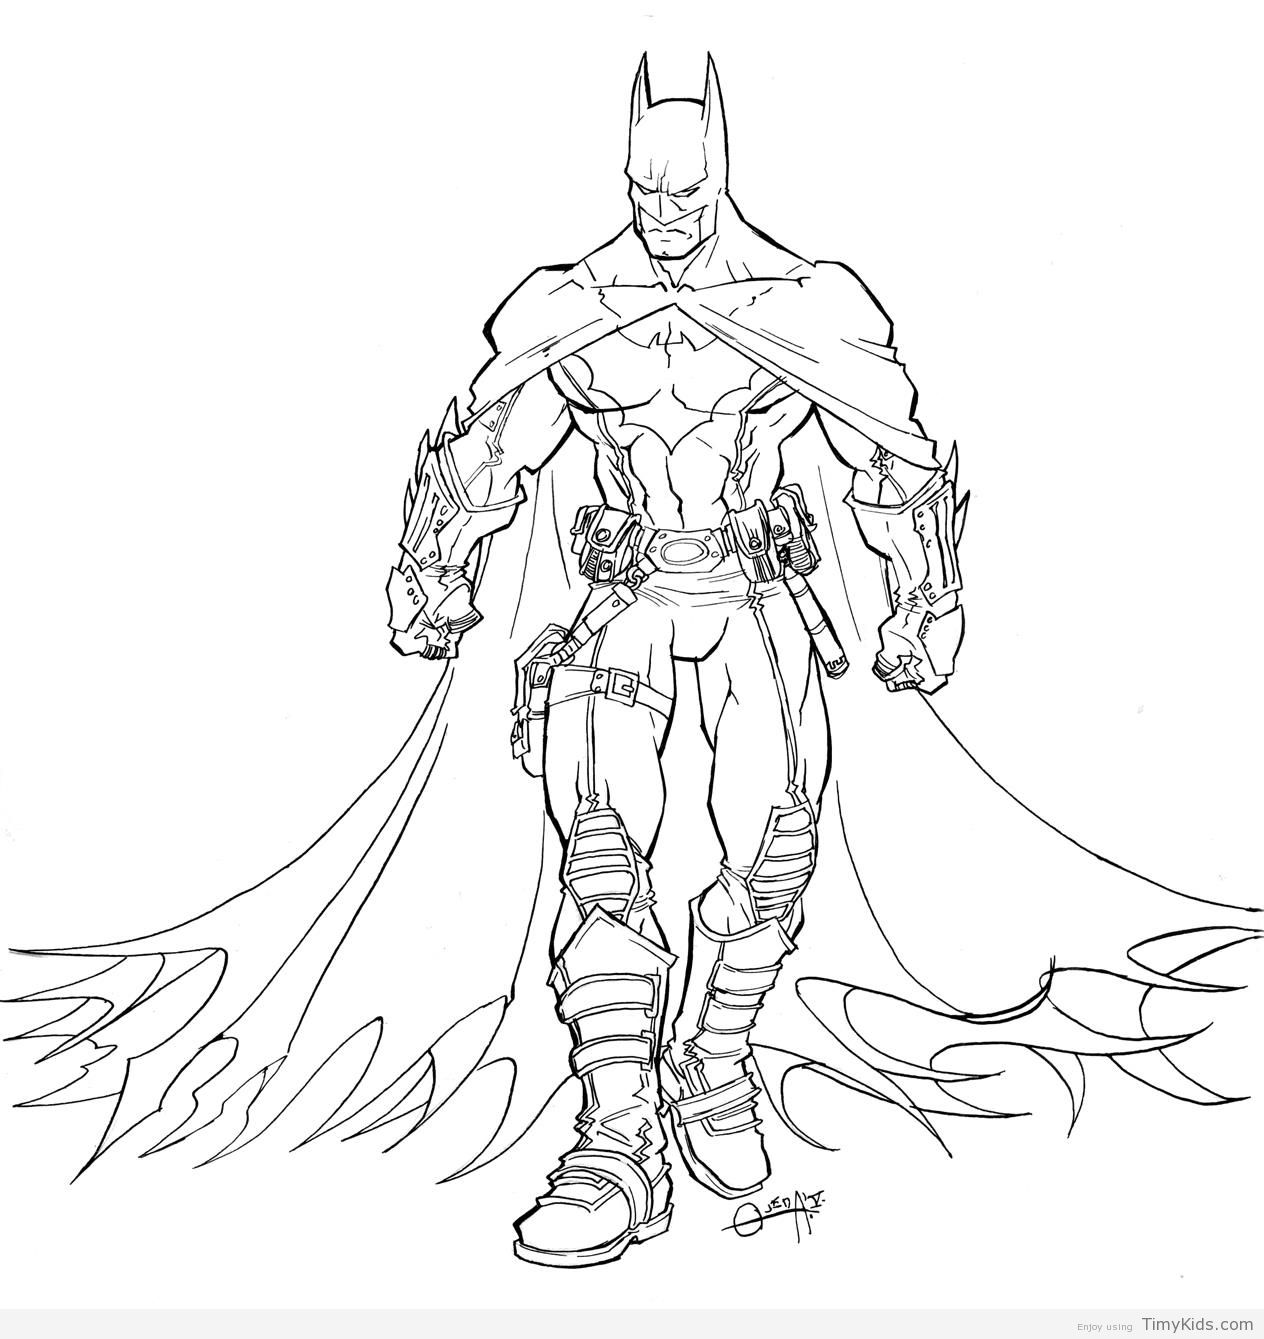 http://timykids.com/batman-coloring-outline.html | Colorings | Pinterest